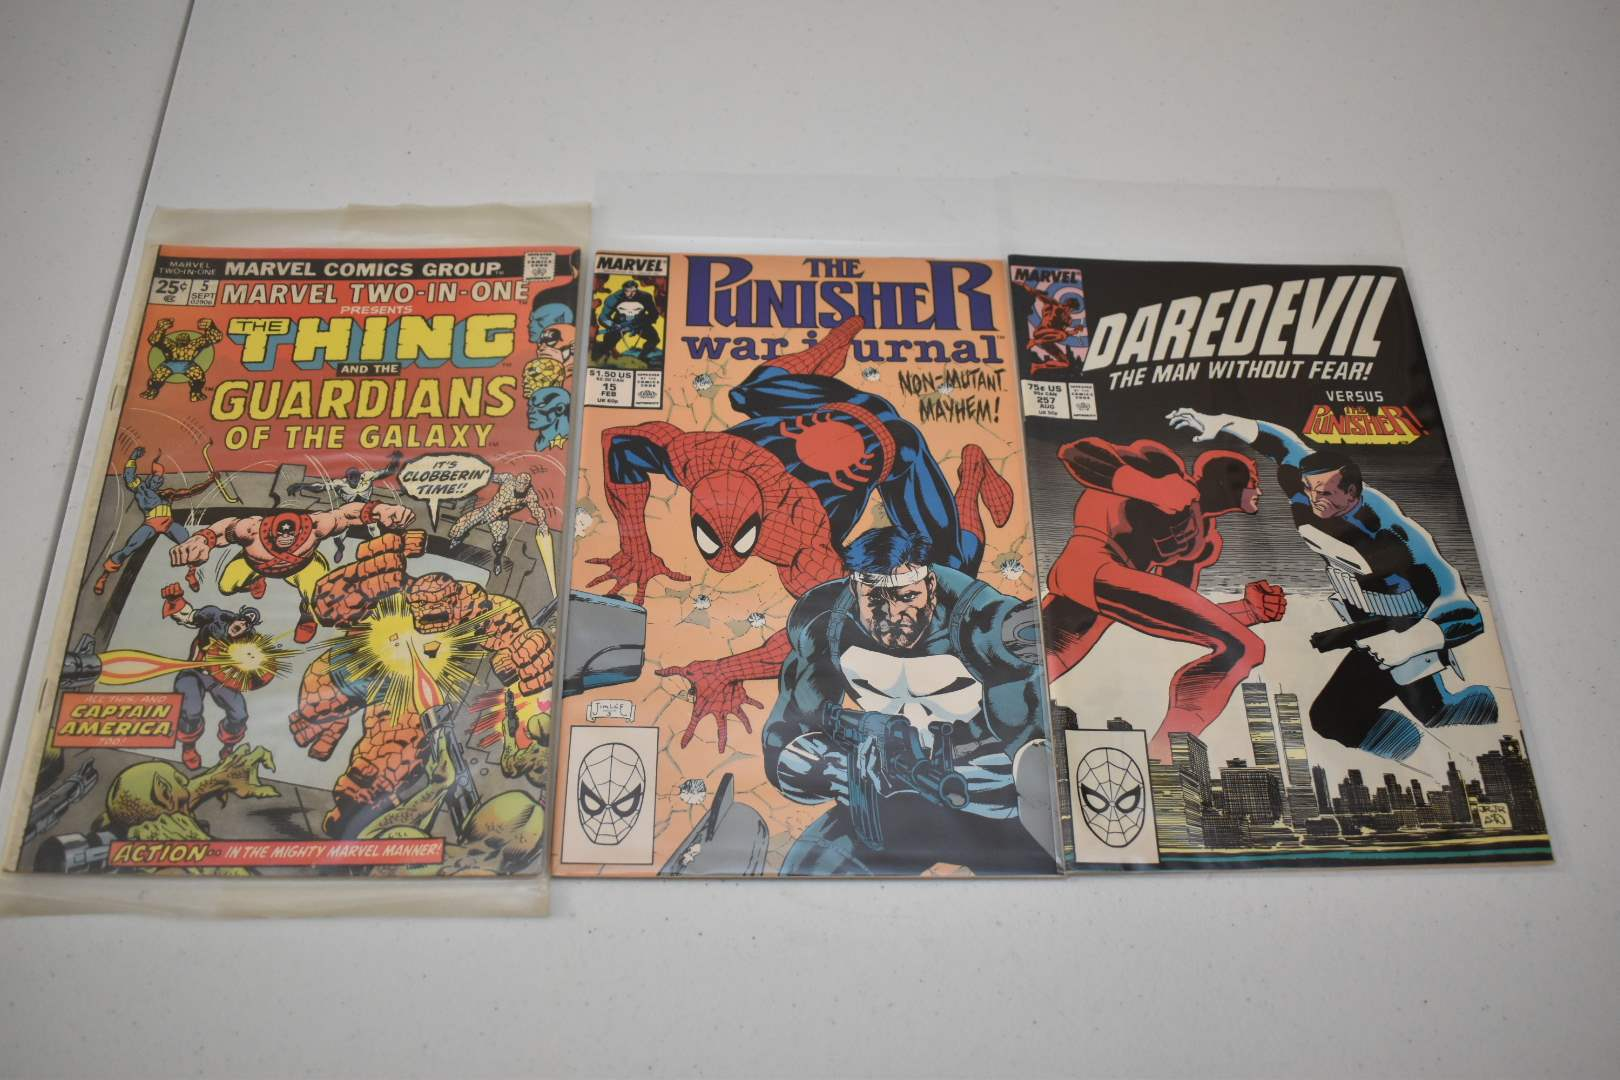 Marvel Comics: Early Guardians of the Galaxy, Punisher and Spider-Man, Punisher and Dare Devil